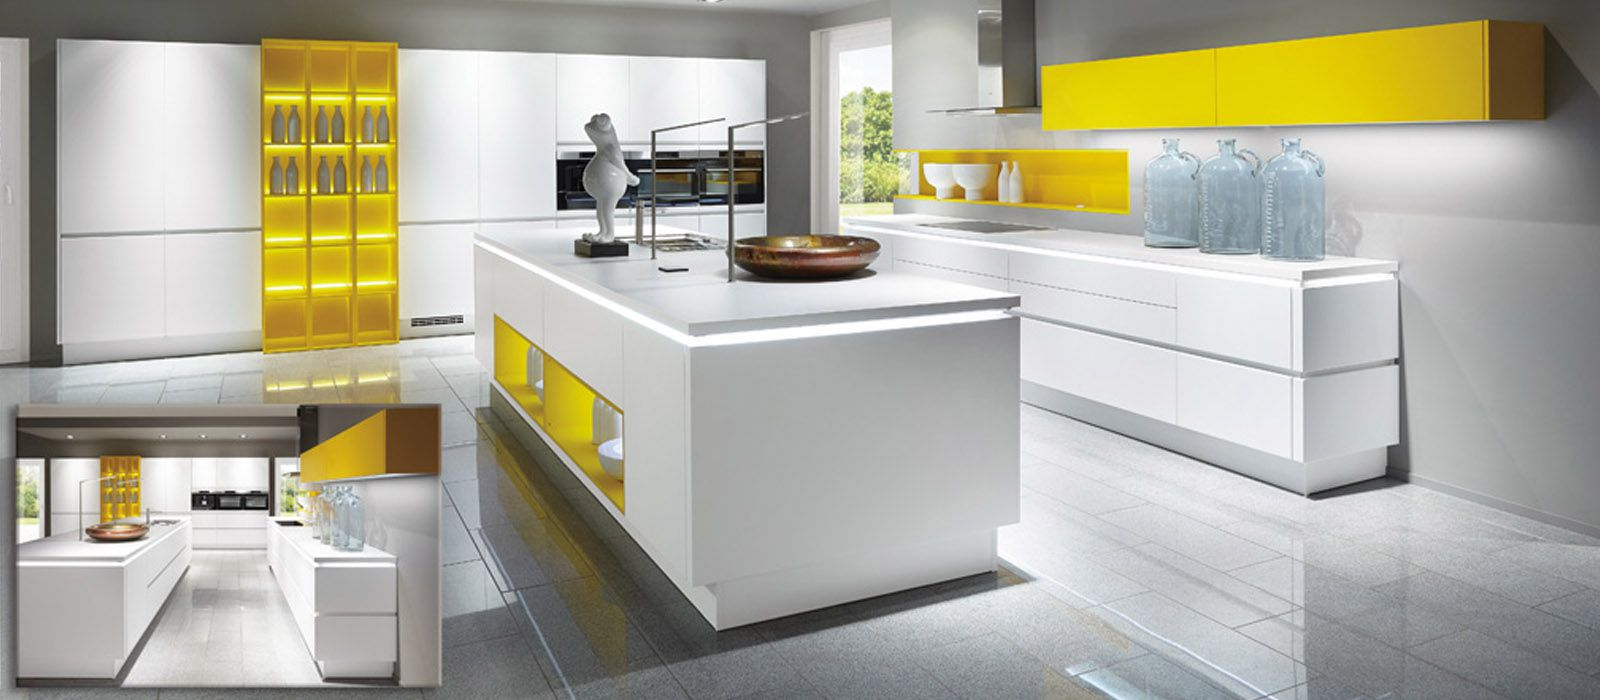 Brands of kitchen cabinets - Modern Kitchen Cabinets German Kitchen Cabinets